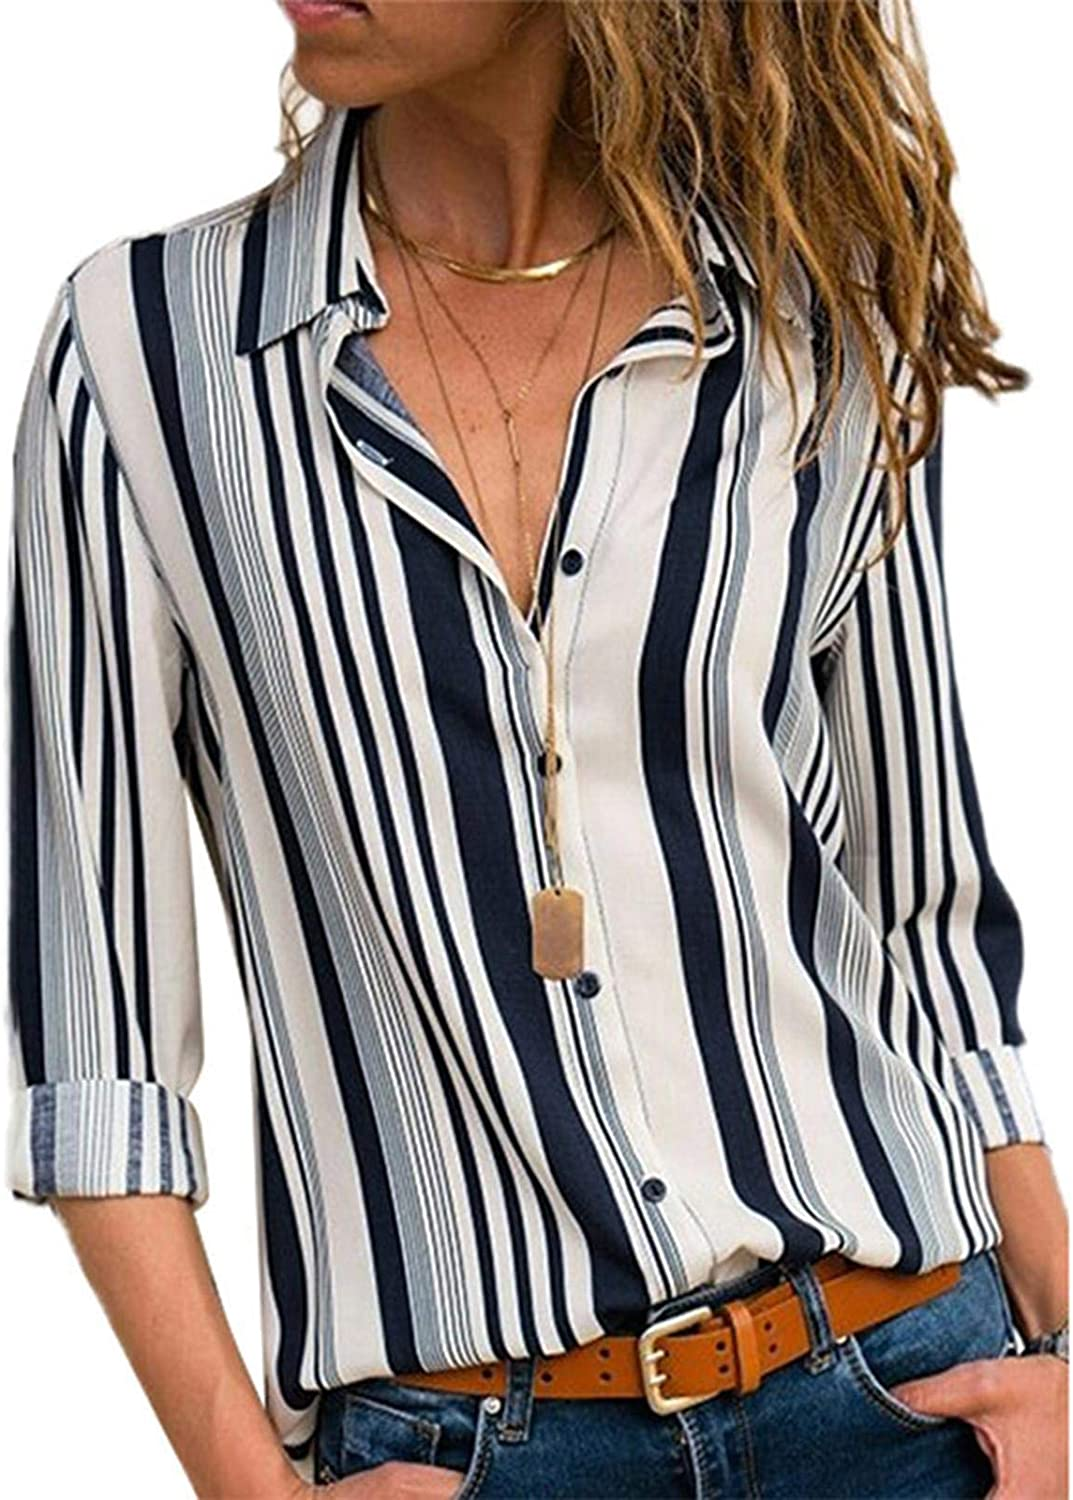 ADJ Women V Neck Striped Roll Up Sleeve Button Down Blouses Tops ,Summer Shirts Button Up Short Sleeve Pleated Tunic Tops